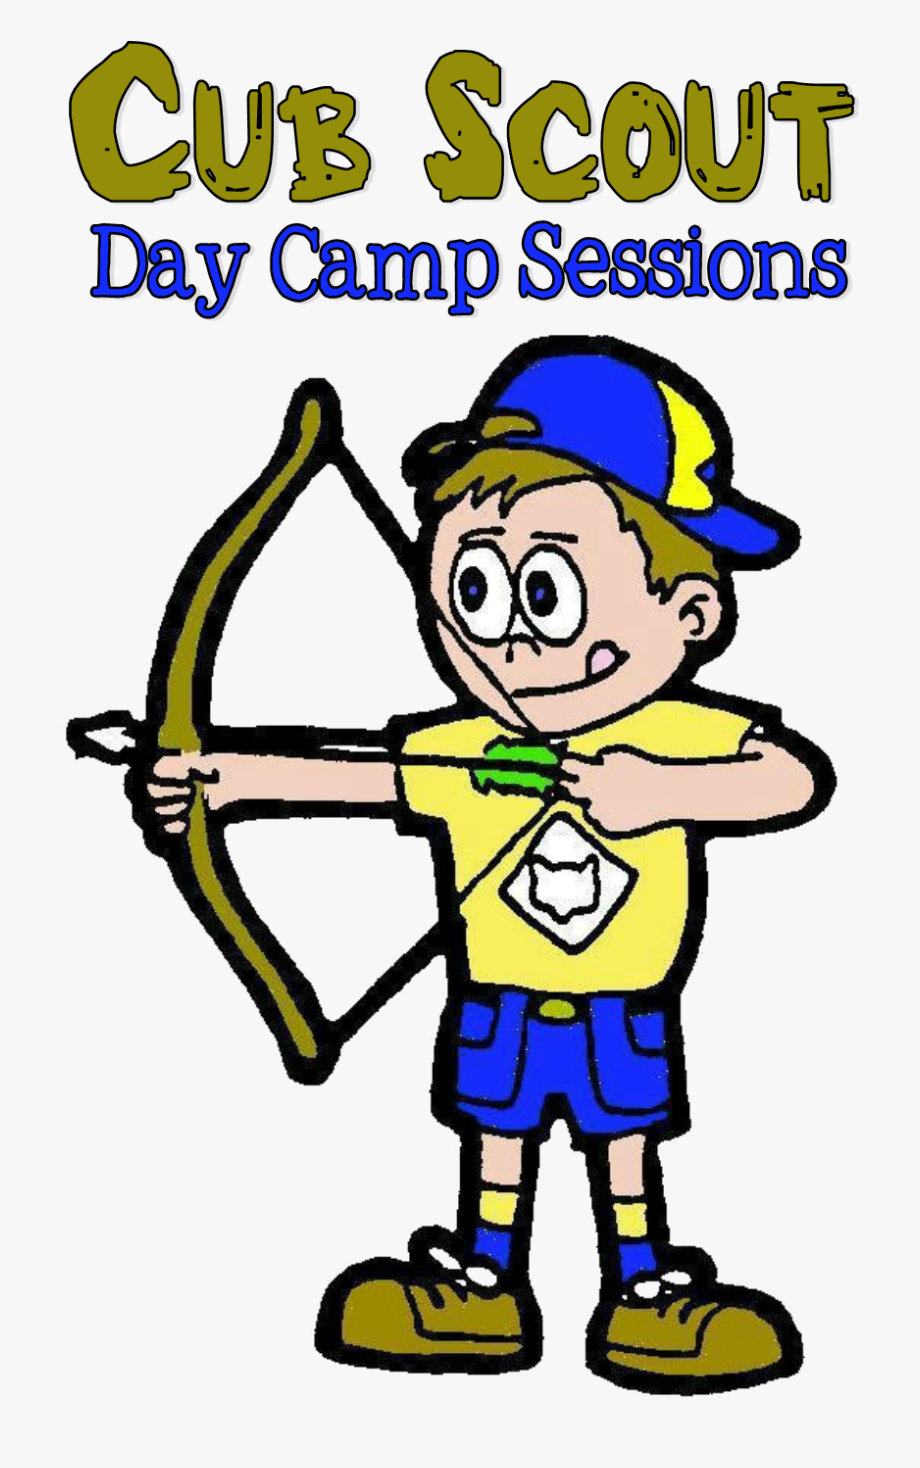 Camping Clipart Cub Scout.